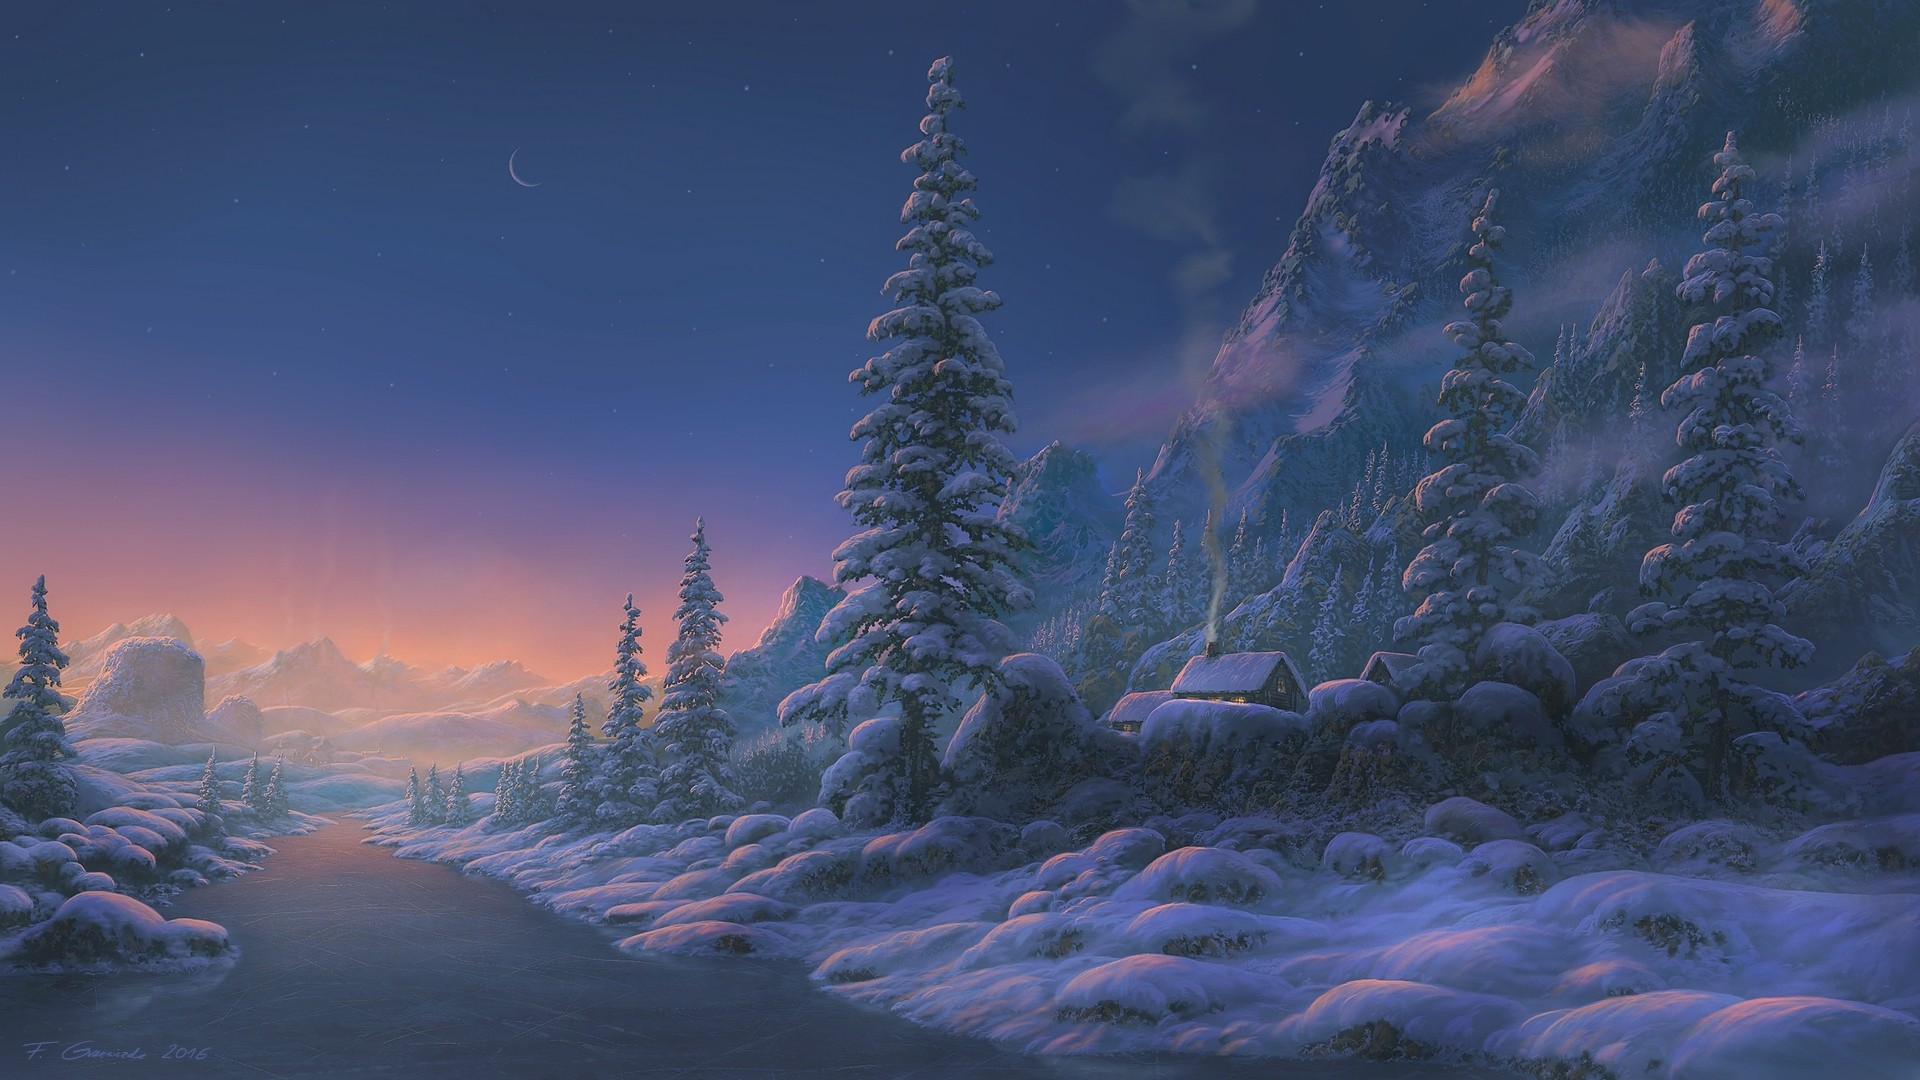 General 1920x1080 fantasy art landscape winter 2016 (Year) snow